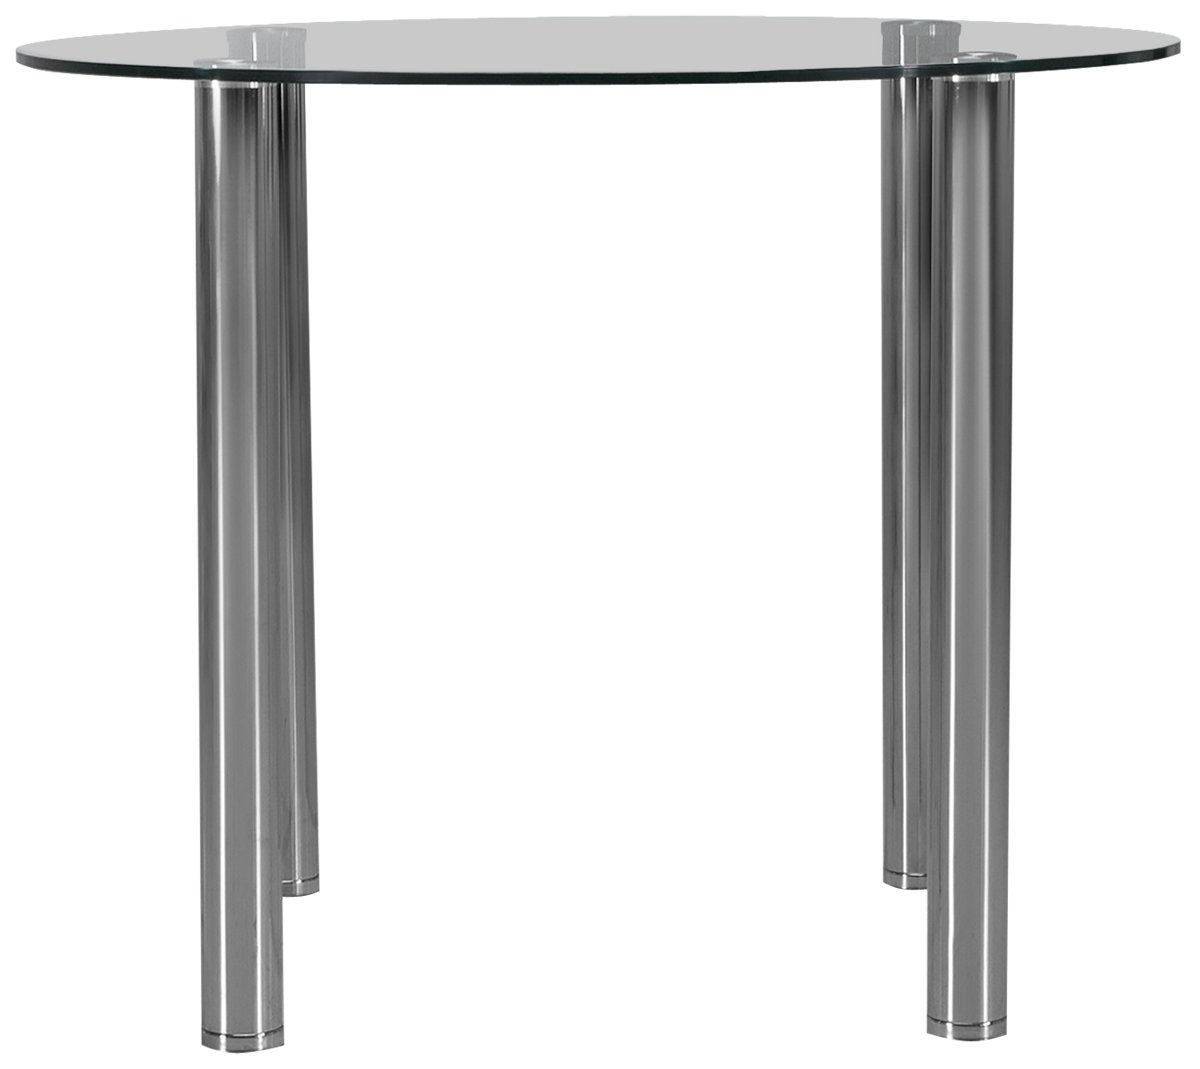 napoli glass round high dining table : G1109701825F00wid1200amphei1200ampfmtjpegampqlt850ampopsharpen0ampresModesharp2ampopusm1180ampiccEmbed0 from www.cityfurniture.com size 1200 x 1200 jpeg 52kB